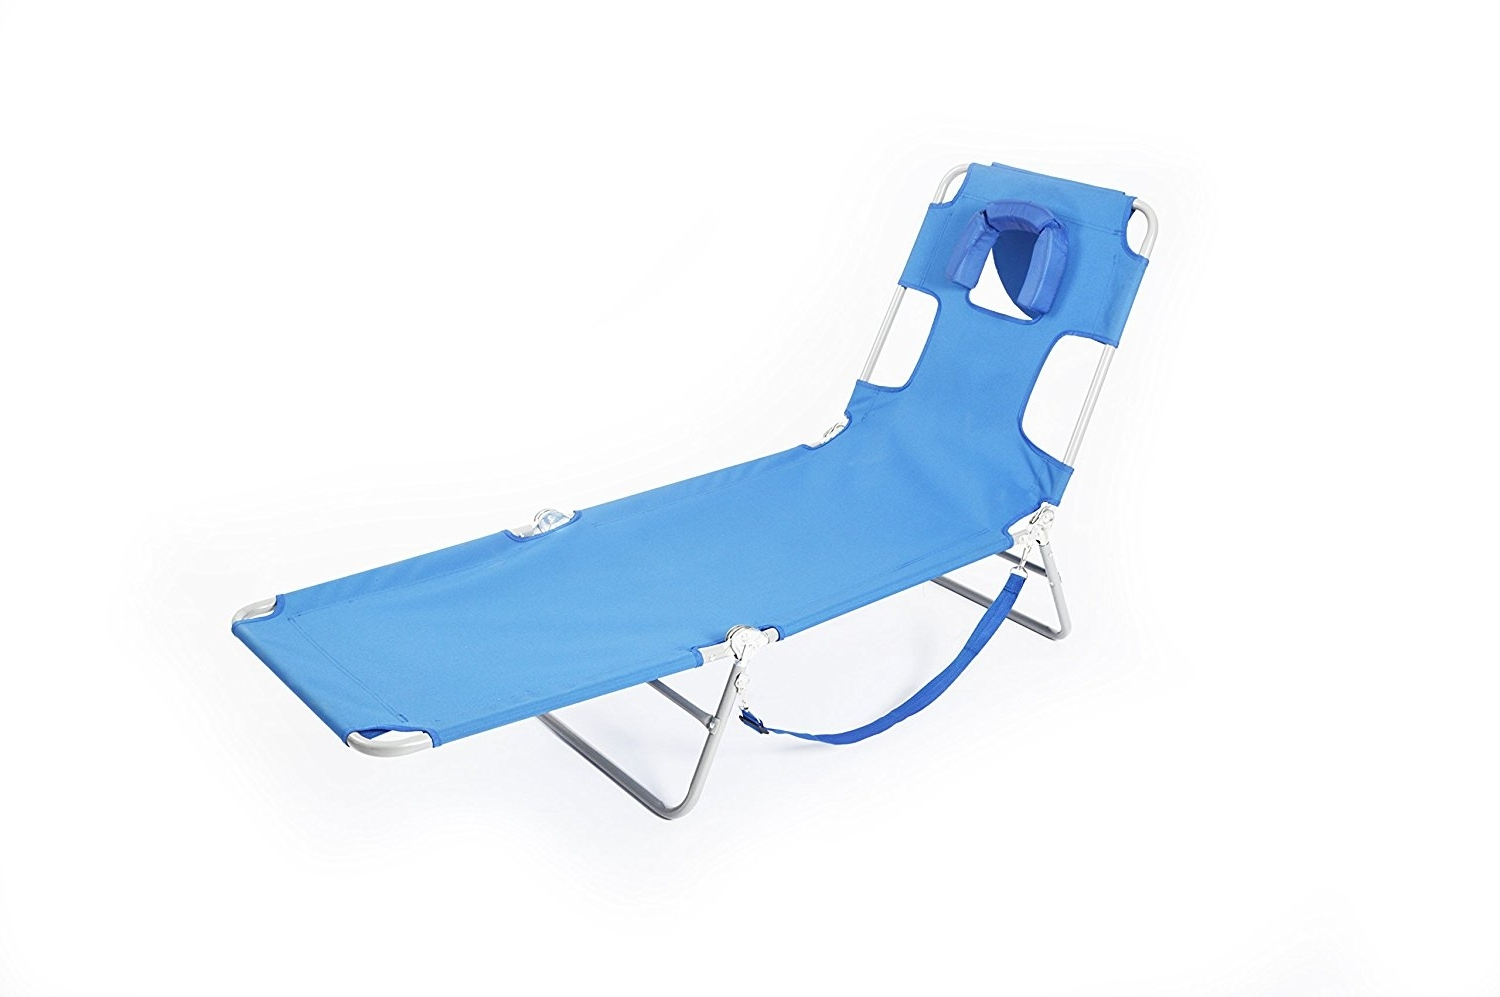 Lounge Chaise Chair By Ostrich With Preferred Amazon: Ostrich Lounge Chaise: Garden & Outdoor (View 14 of 15)